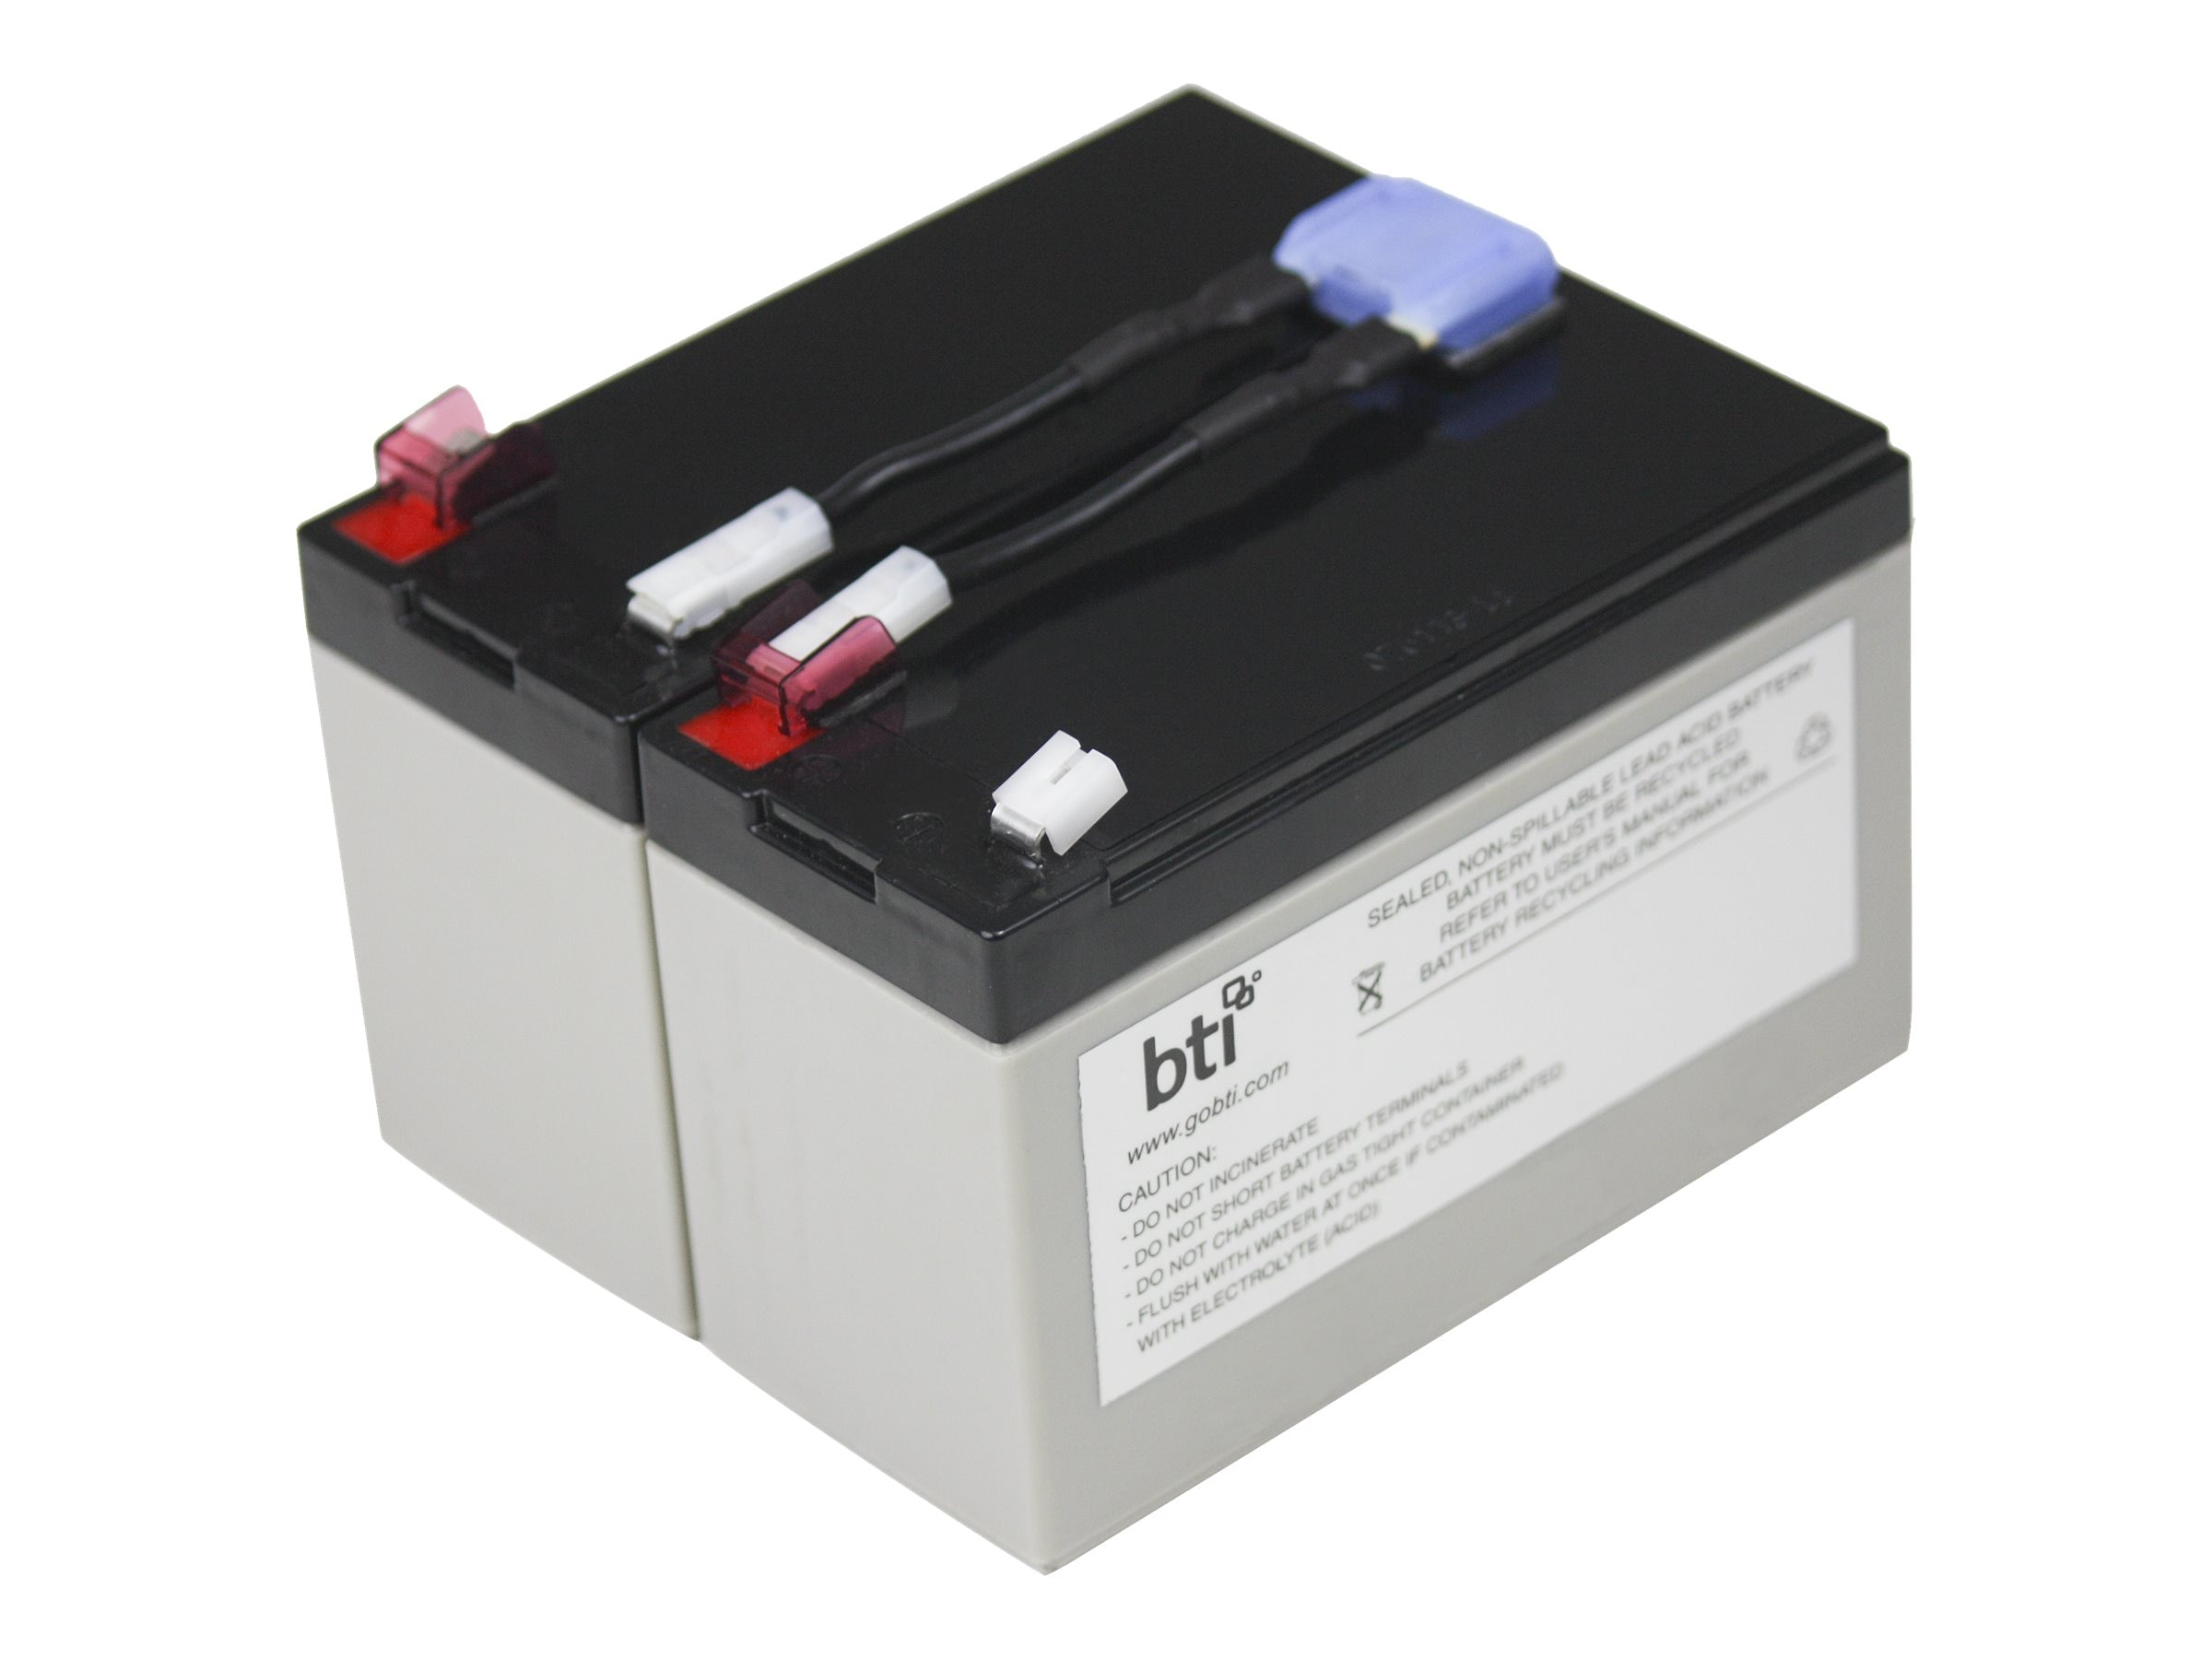 BTI Replacement UPS Battery for APC RBC9 SU700RM SU700RMNET, RBC9-SLA9-BTI